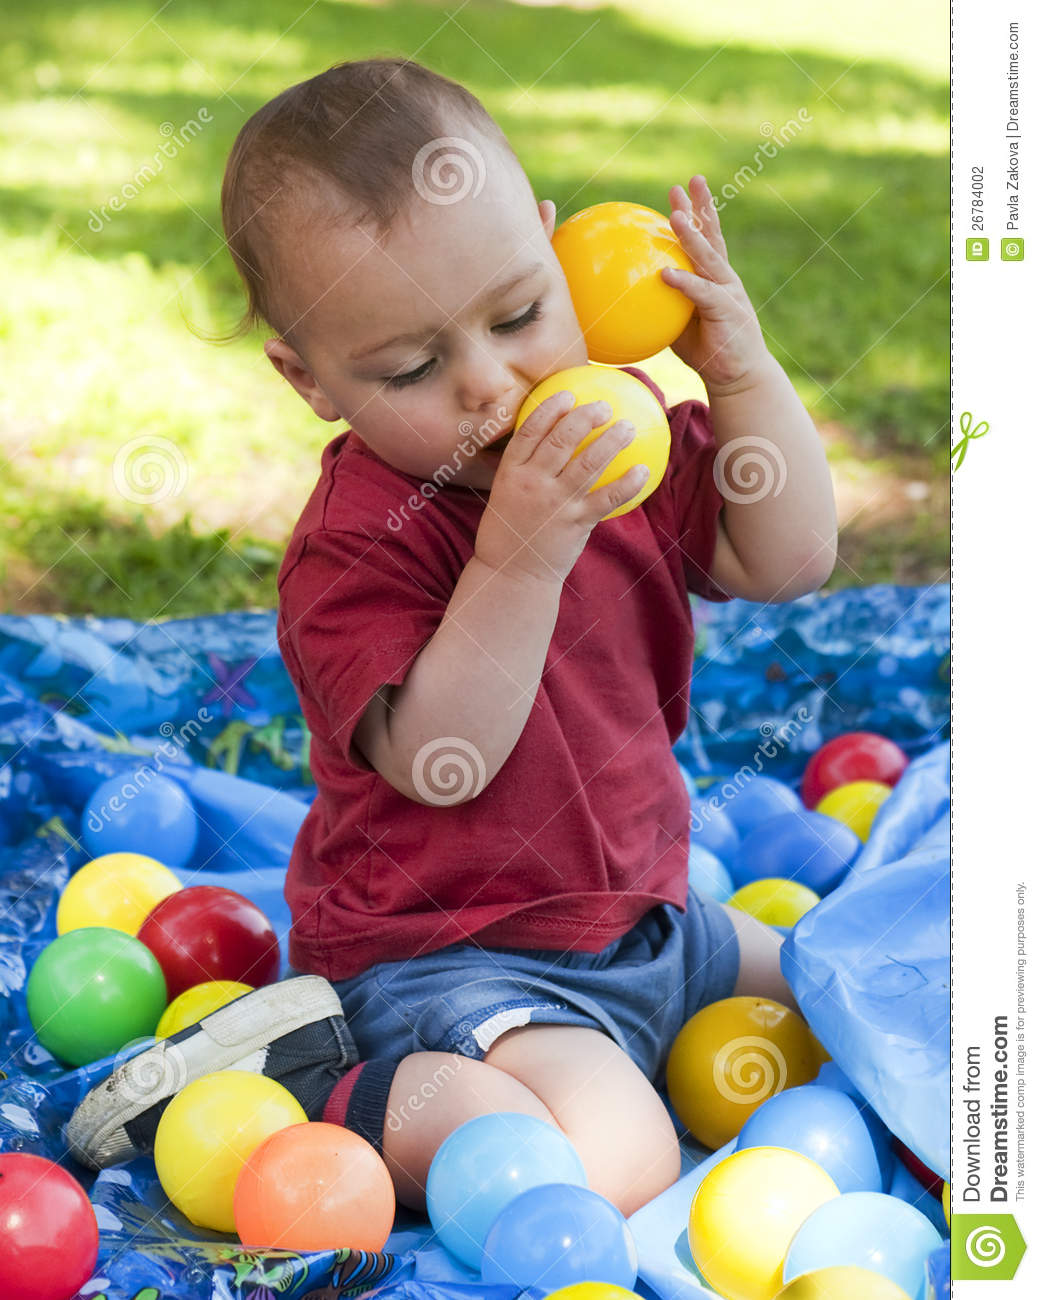 child playing with balls in garden stock photo image 26784002. Black Bedroom Furniture Sets. Home Design Ideas